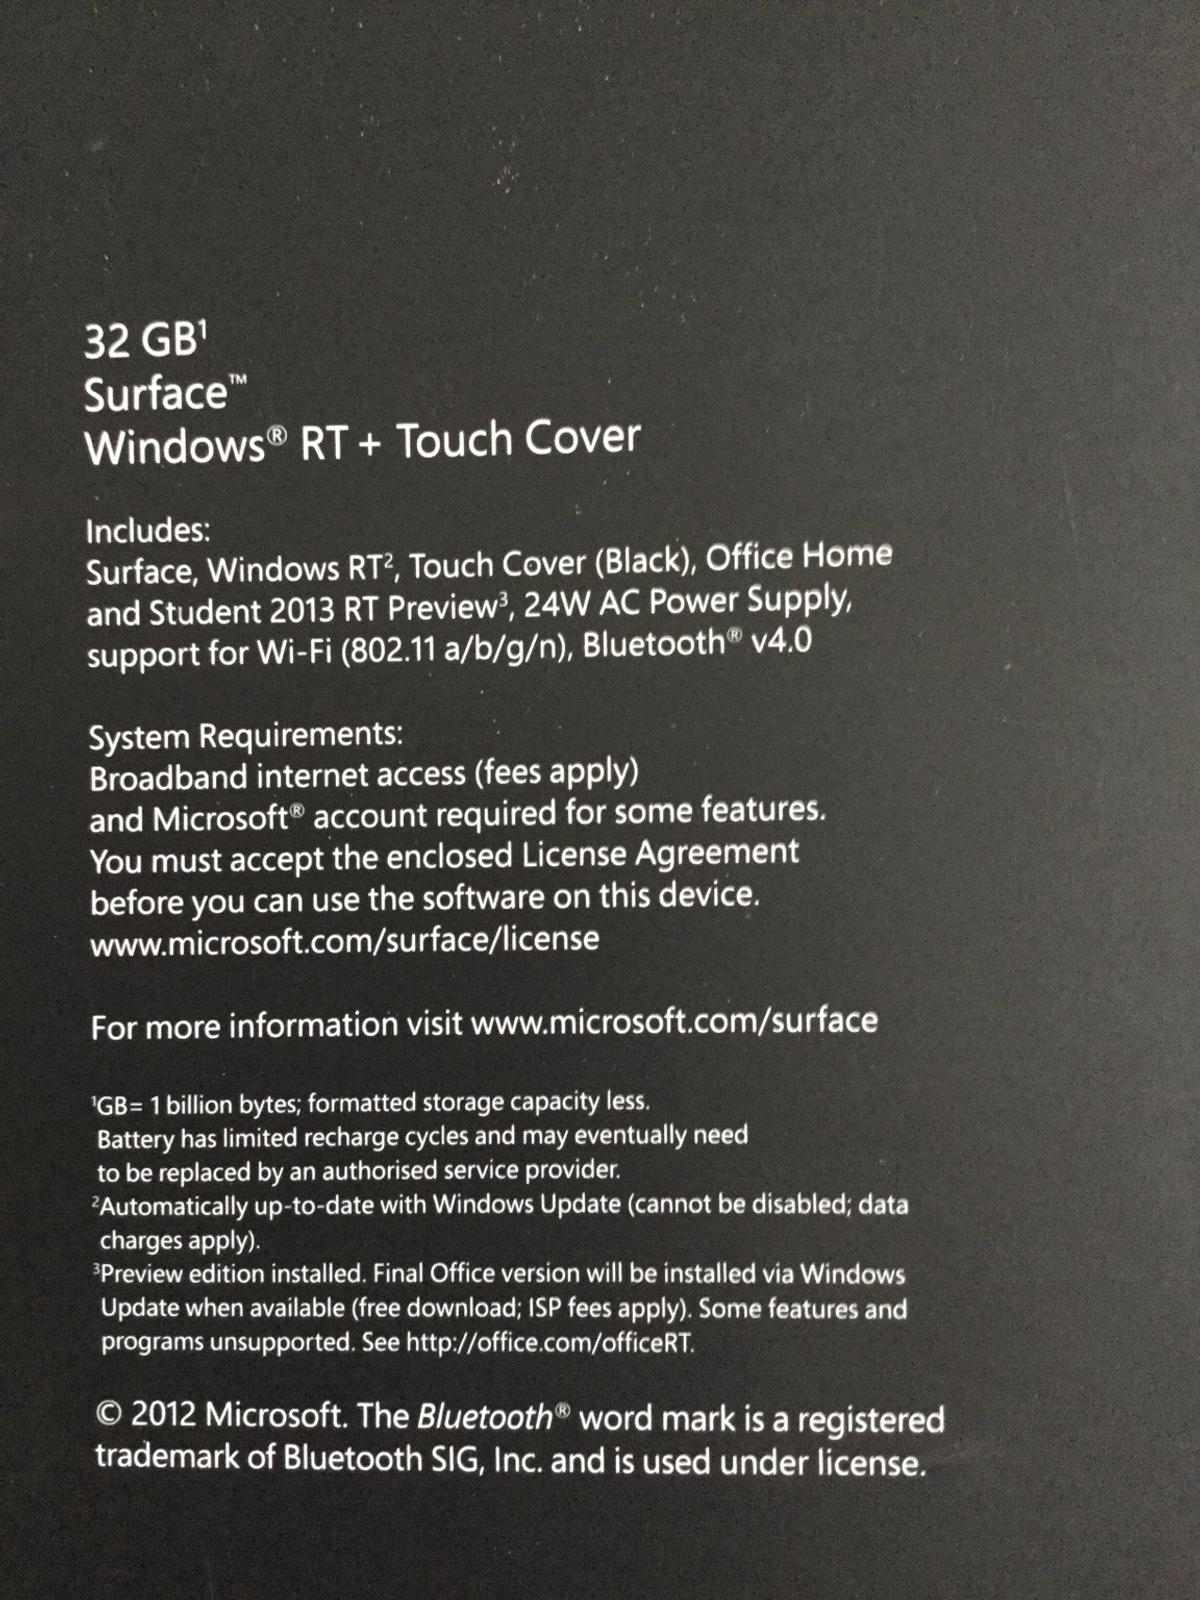 Surface RT tablet 32 gb in TN23 Ashford for £75 00 for sale